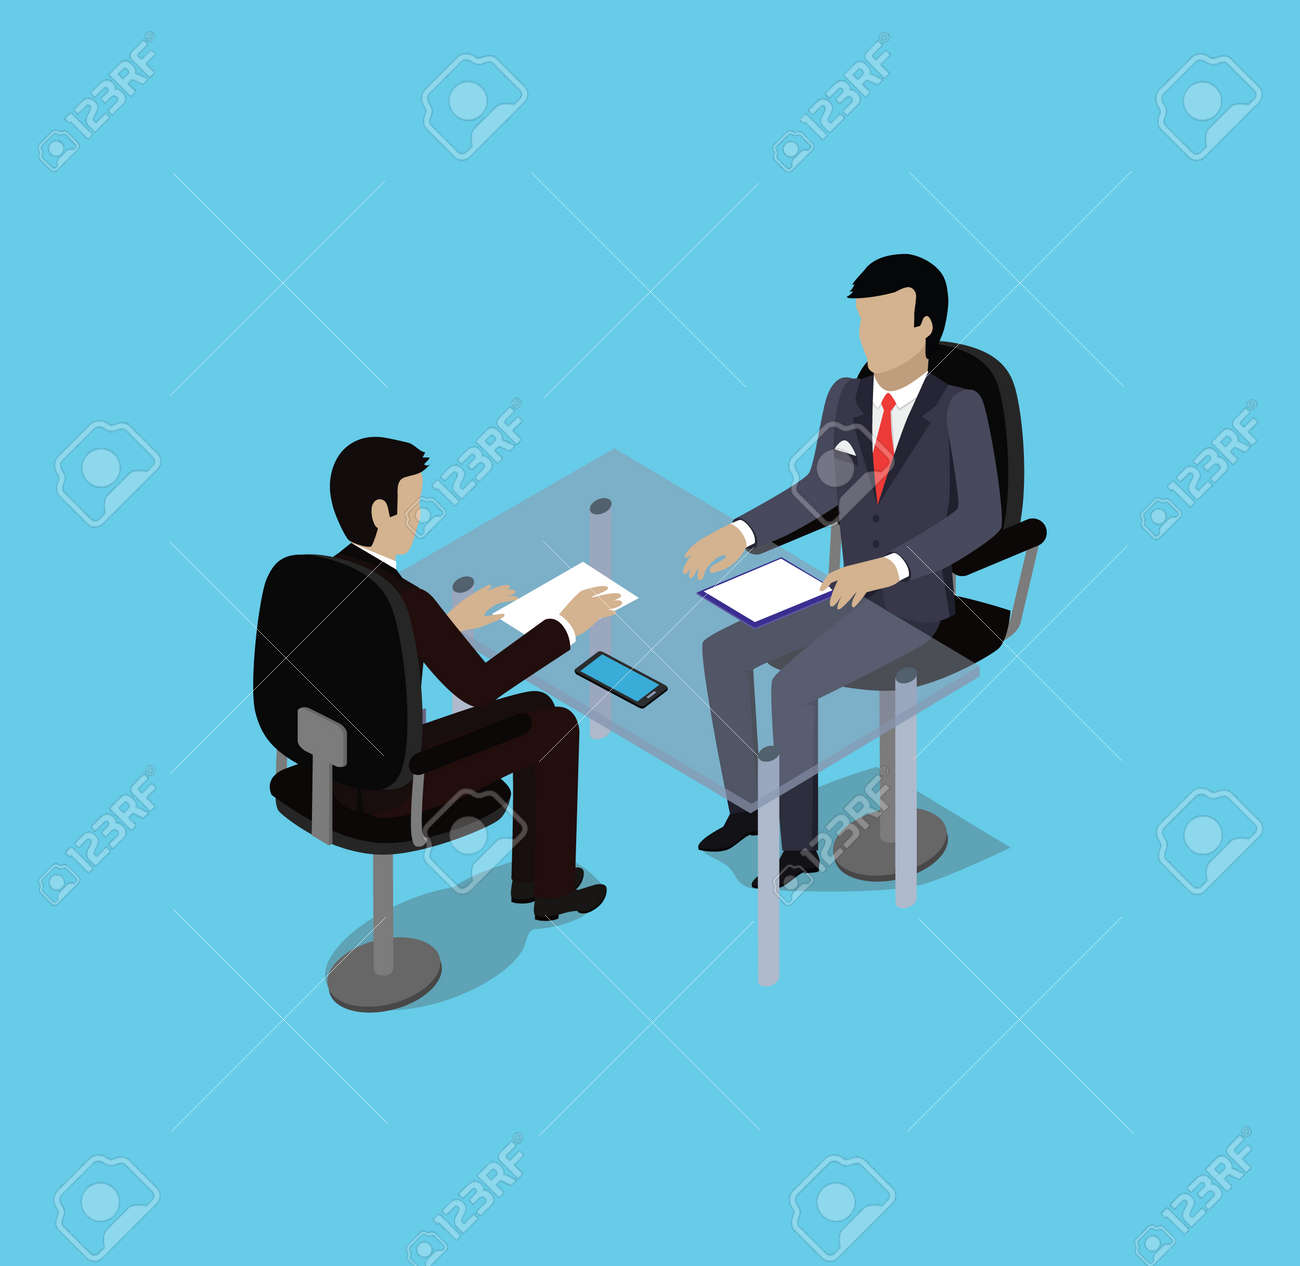 Isometric hiring recruiting interview. Look resume applicant employer. Hands Hold CV profile. Isometric 3d HR, recruiting, we are hiring. Candidate job position. Hire and interviewer. Business meeting - 51245422